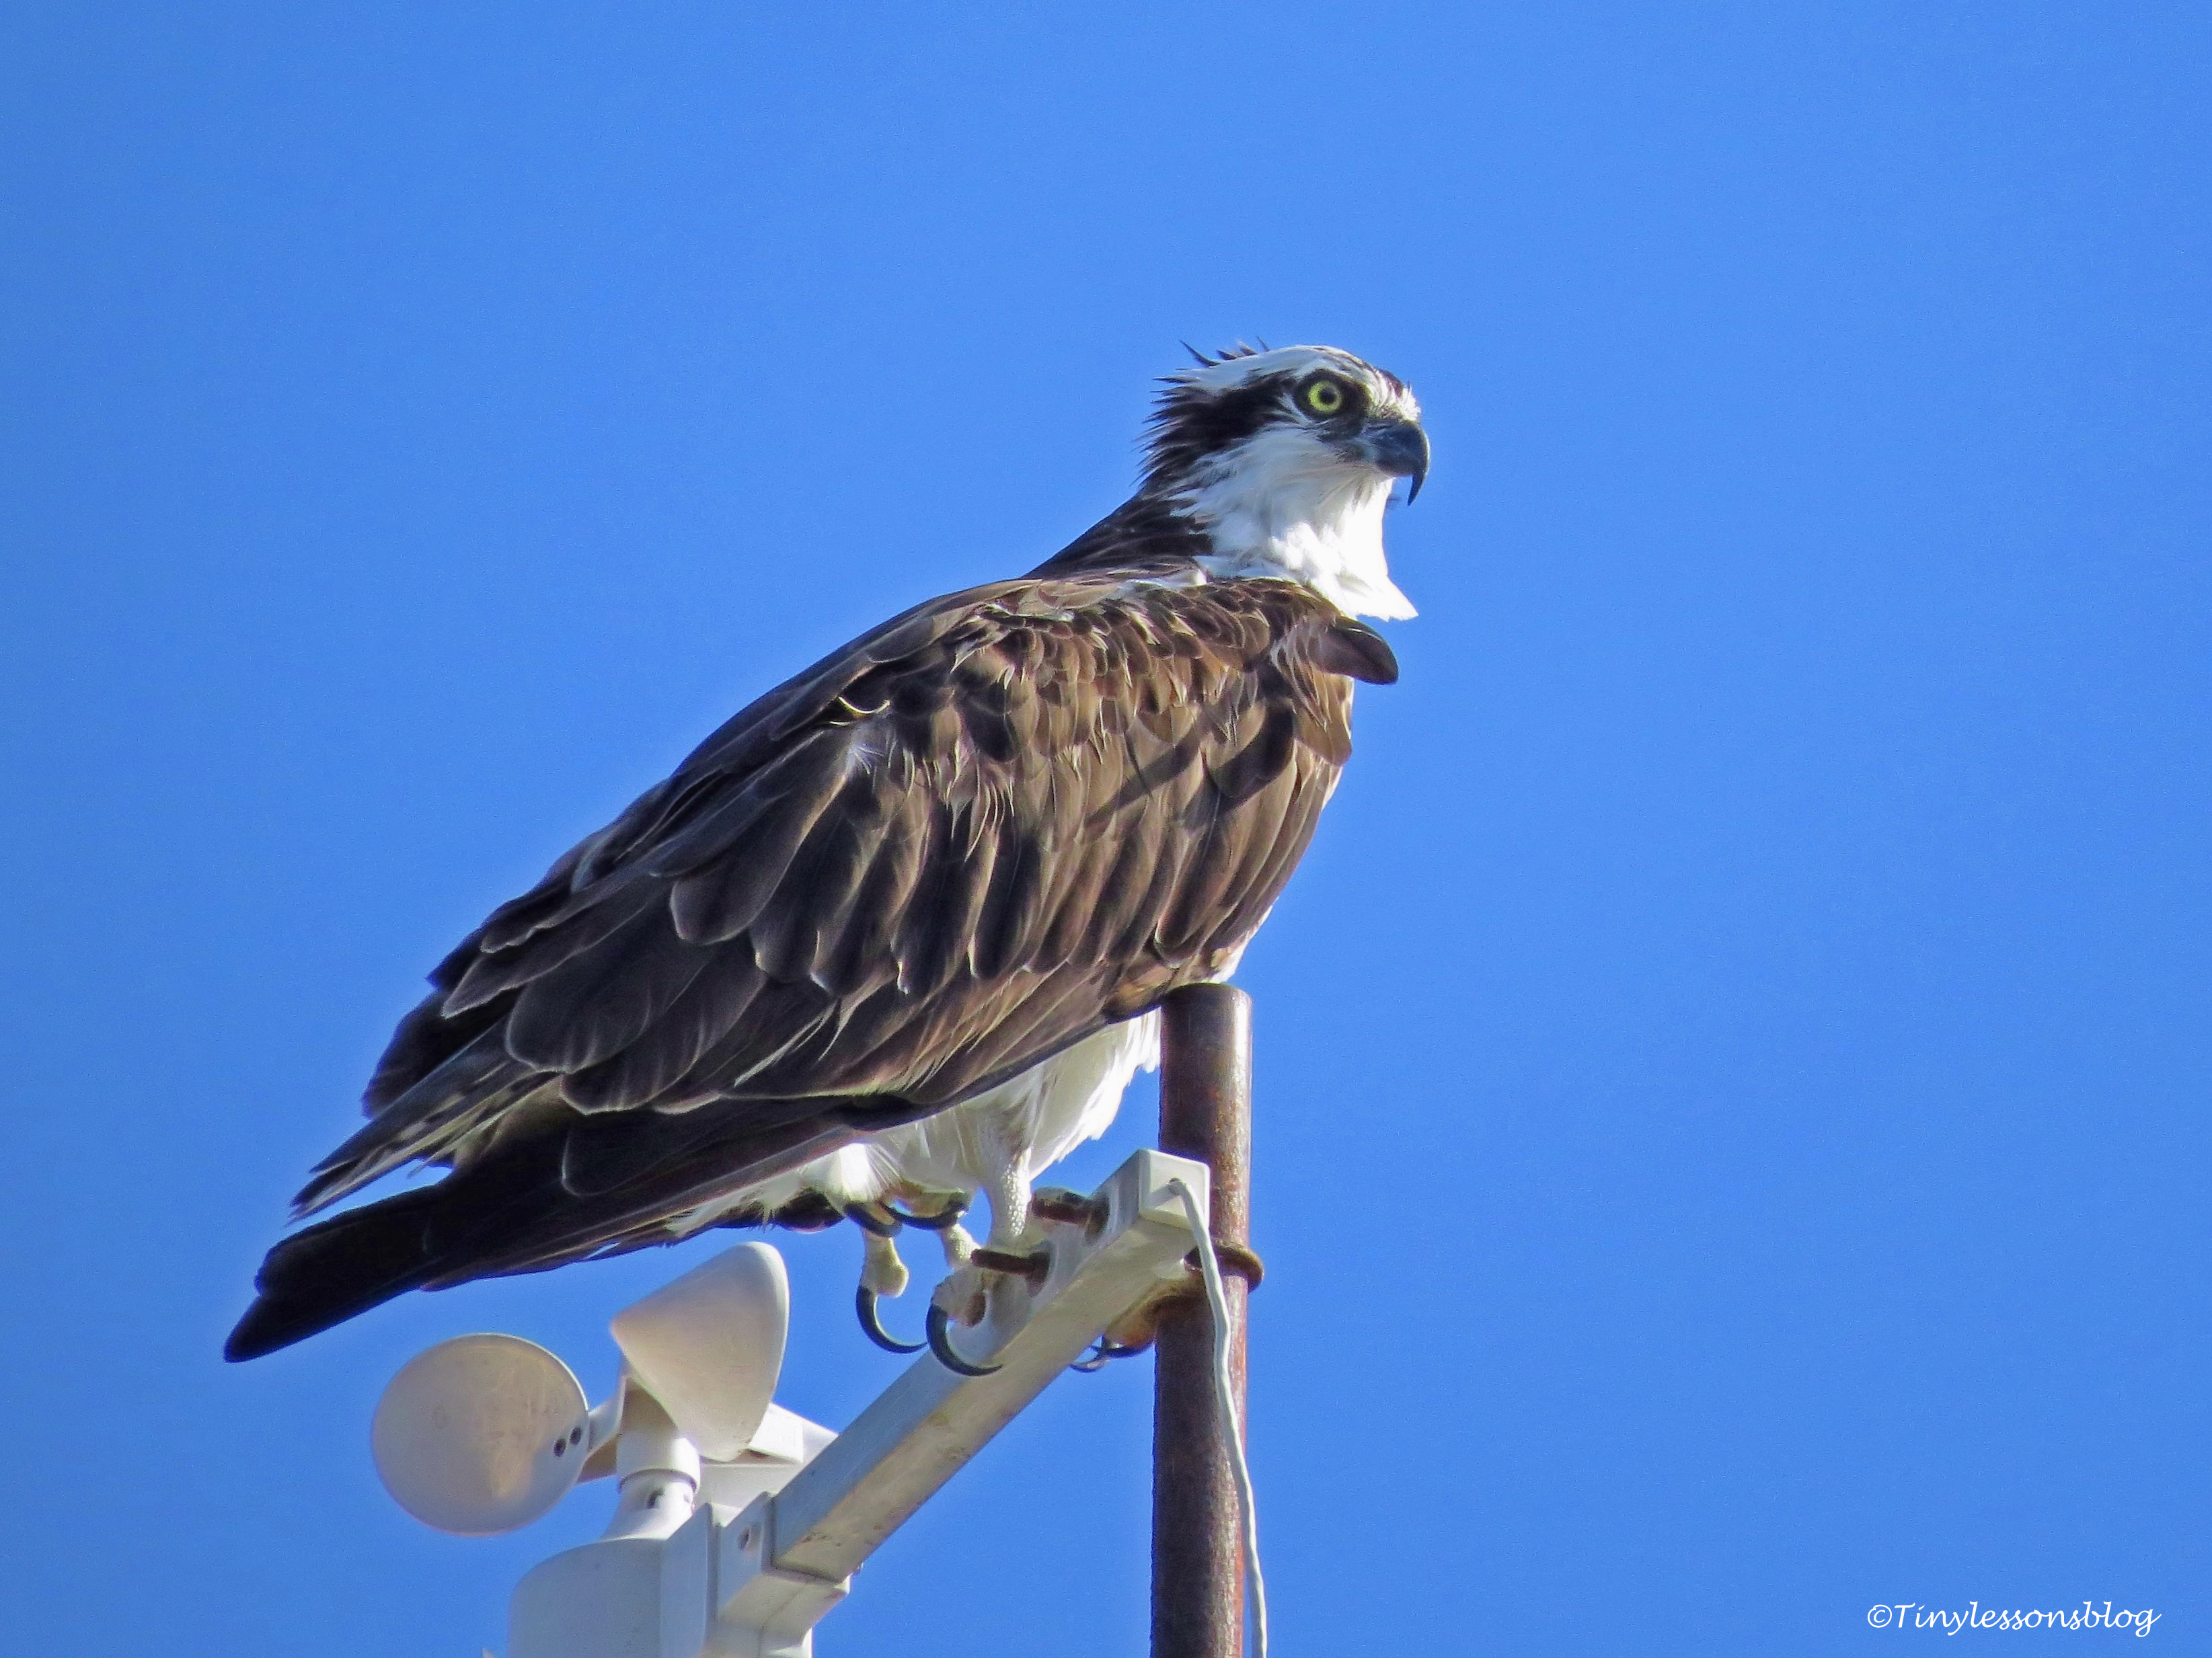 papa-osprey-at-sailing-club-ud83